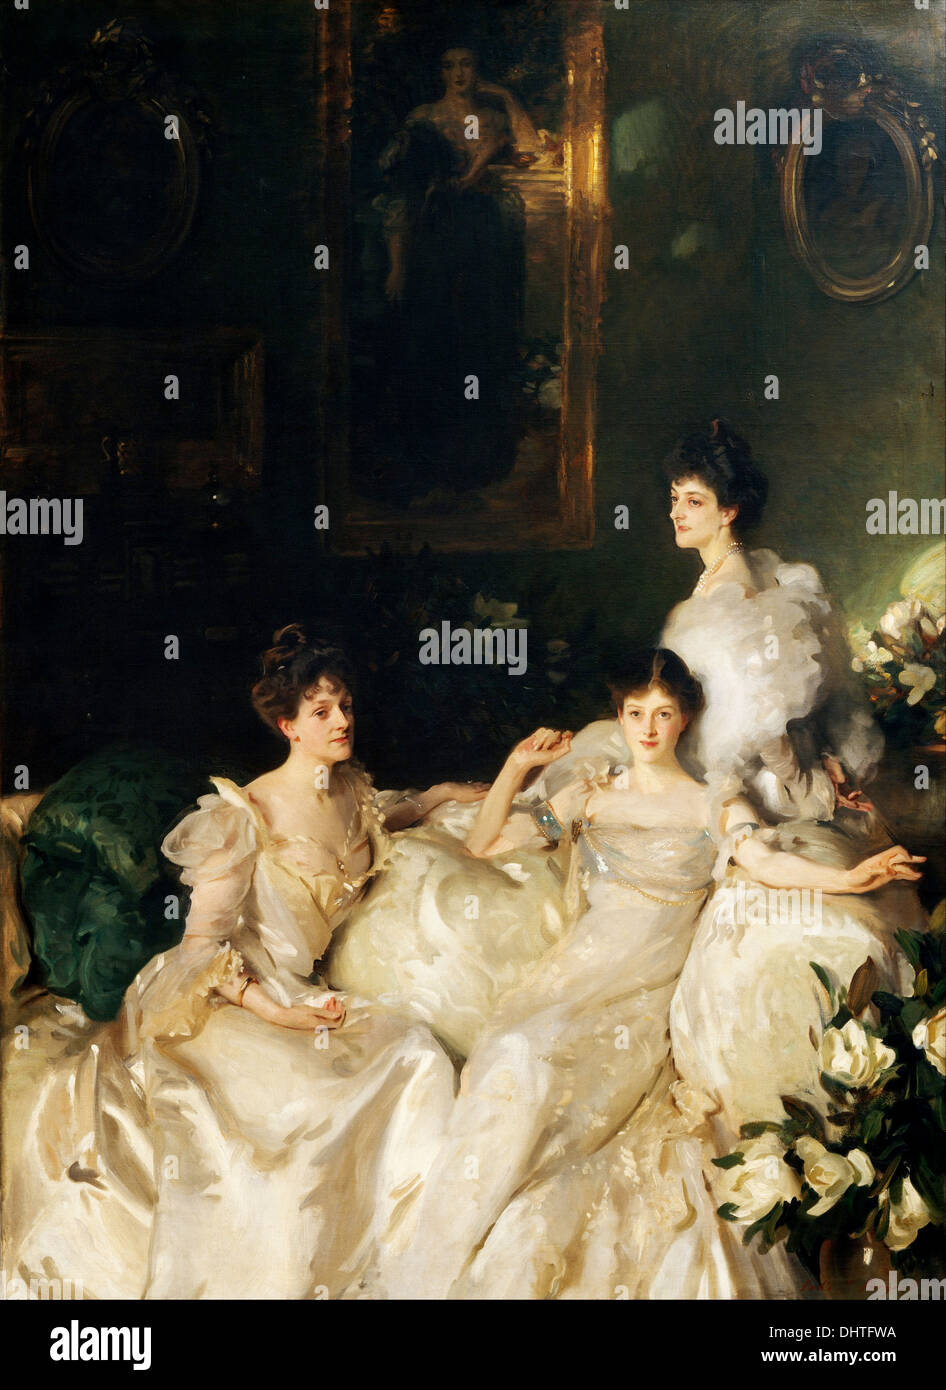 The Wyndham Sisters: Lady Elcho, Mrs. Adeane, and Mrs. Tennant - by John Singer Sargent, 1899 - Stock Image